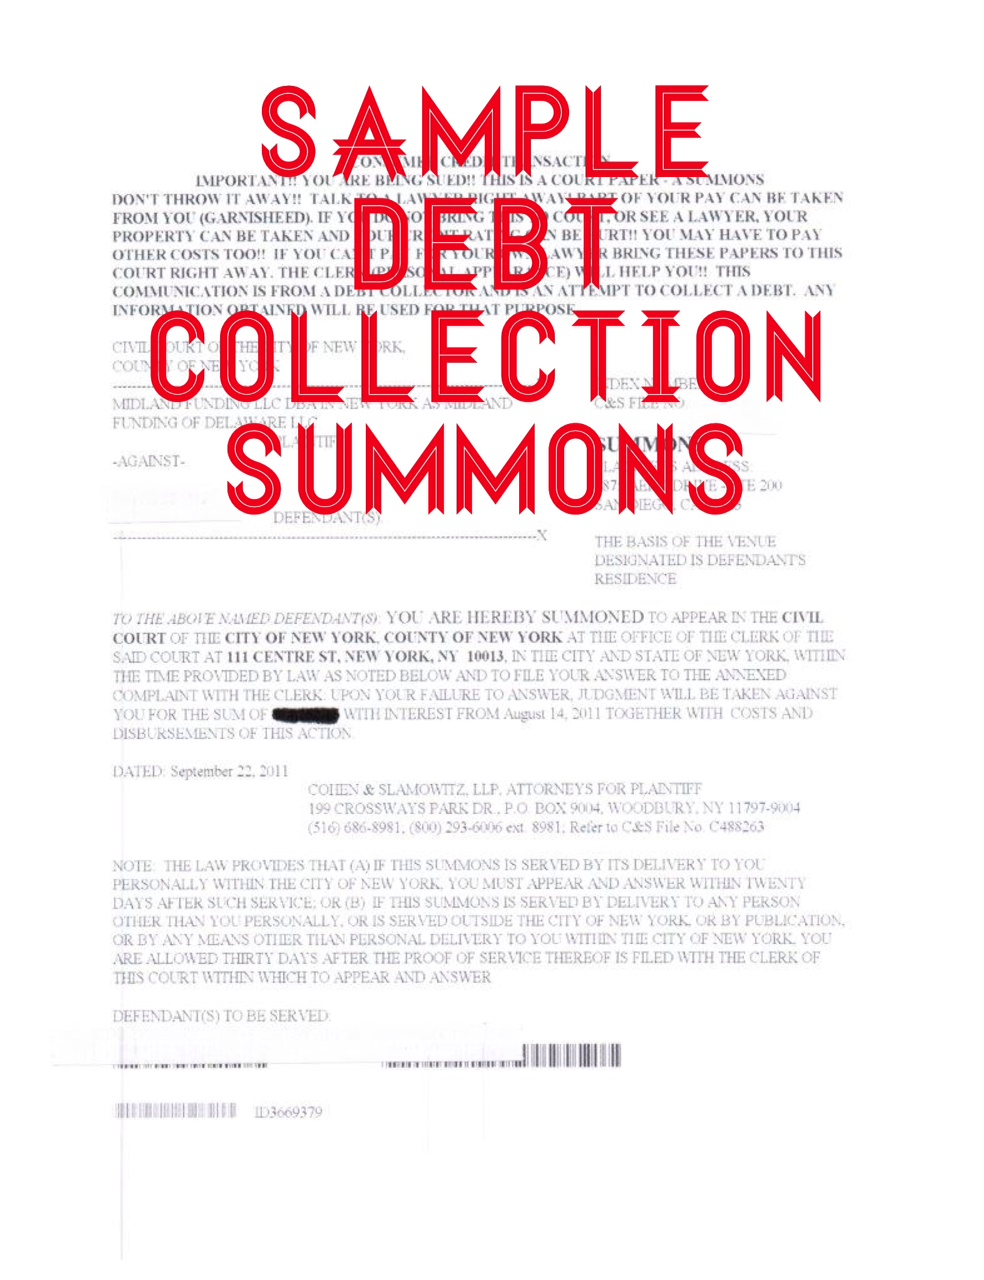 How to answer a summons and complaint in a debt collection lawsuit how to answer a summons and complaint in a debt collection lawsuit altavistaventures